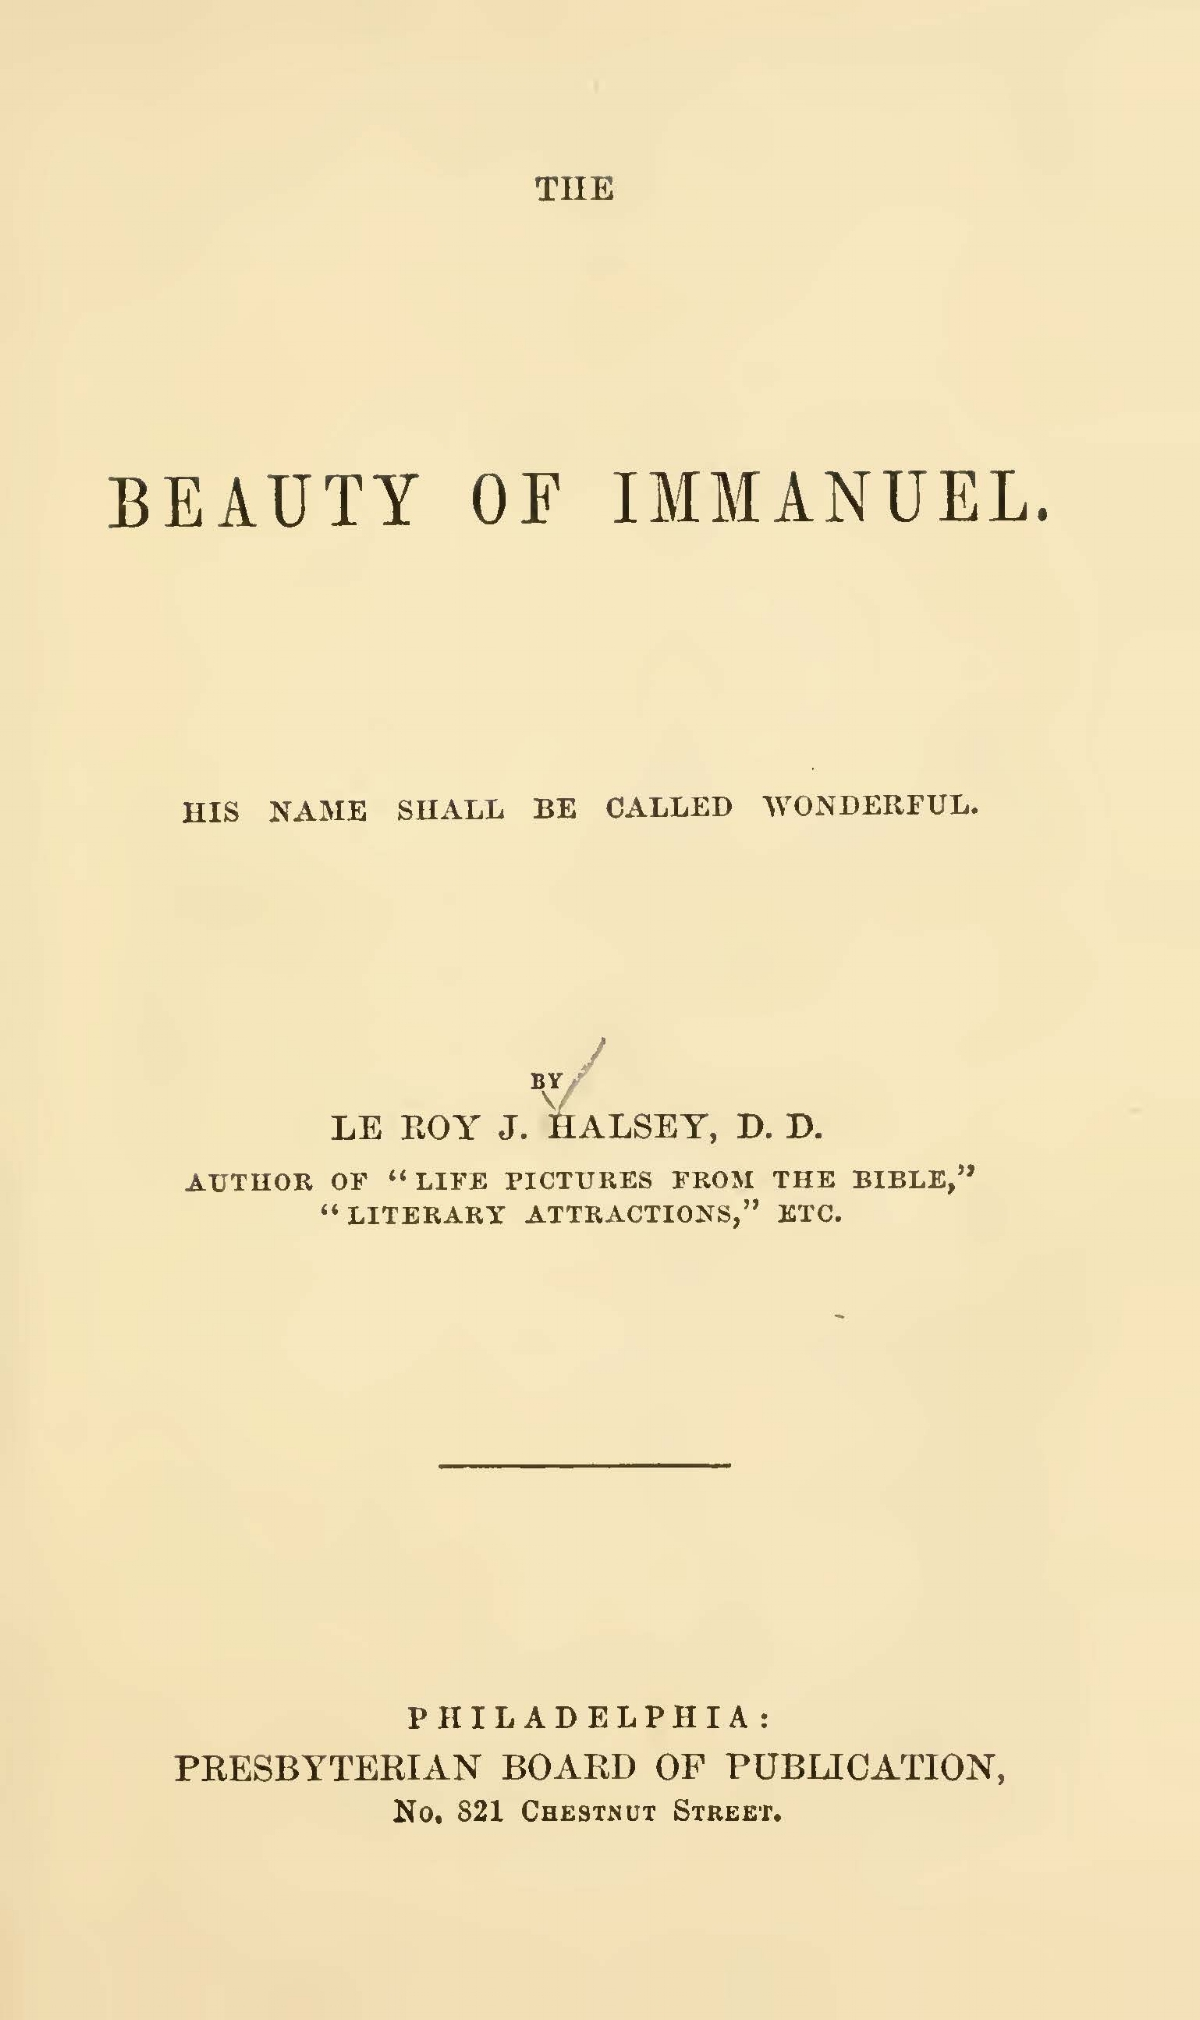 Halsey, Leroy Jones, The Beauty of Immanuel Title Page.jpg